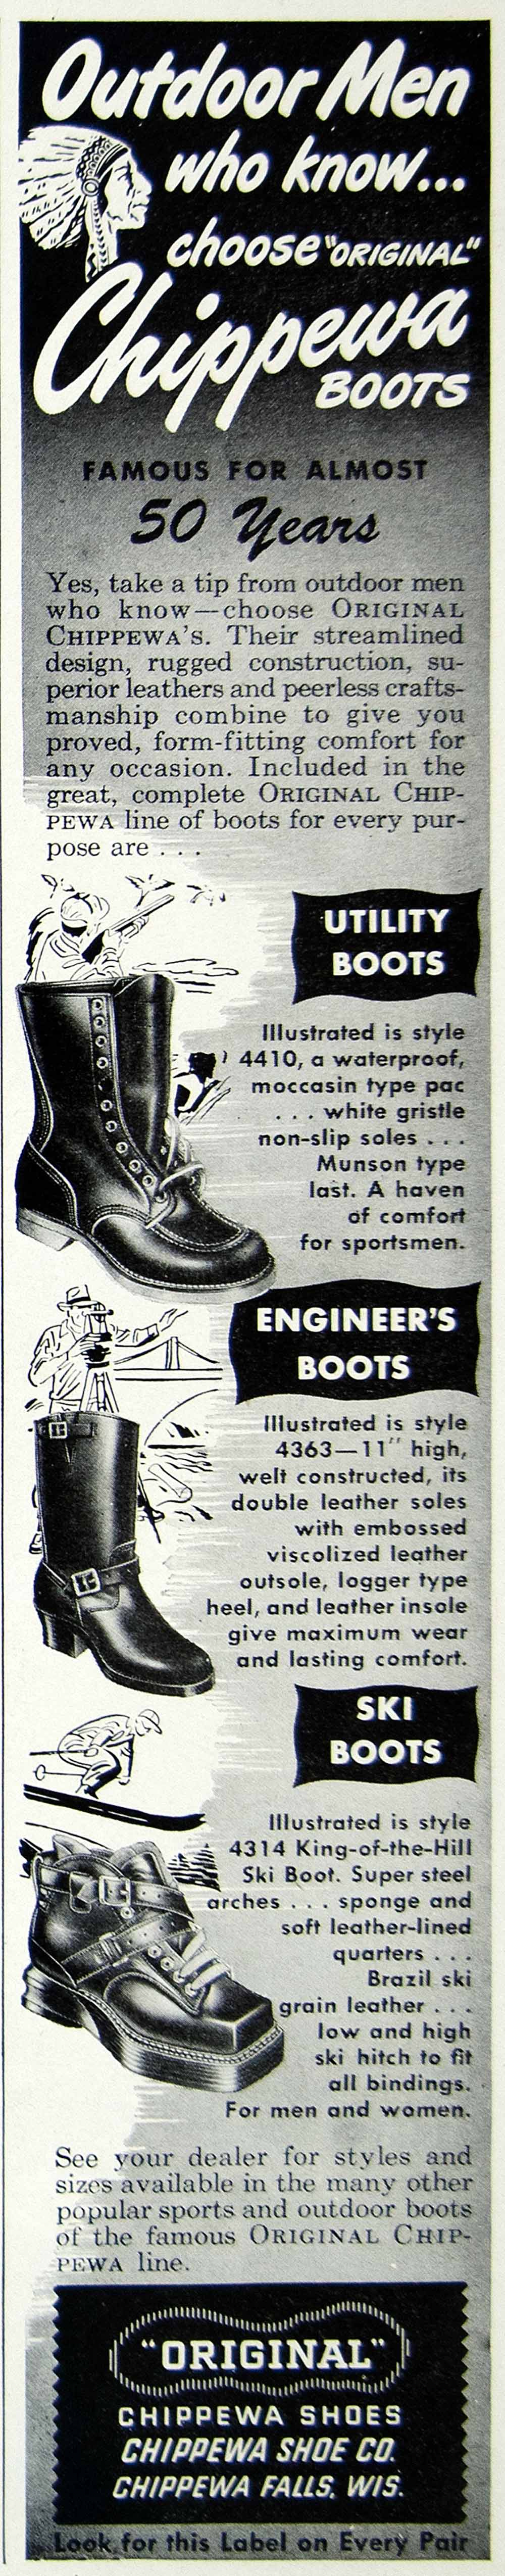 1948 Ad Chippewa Falls Boots Shoes Wisconsin Engineer Ski Utility Indian HDL2